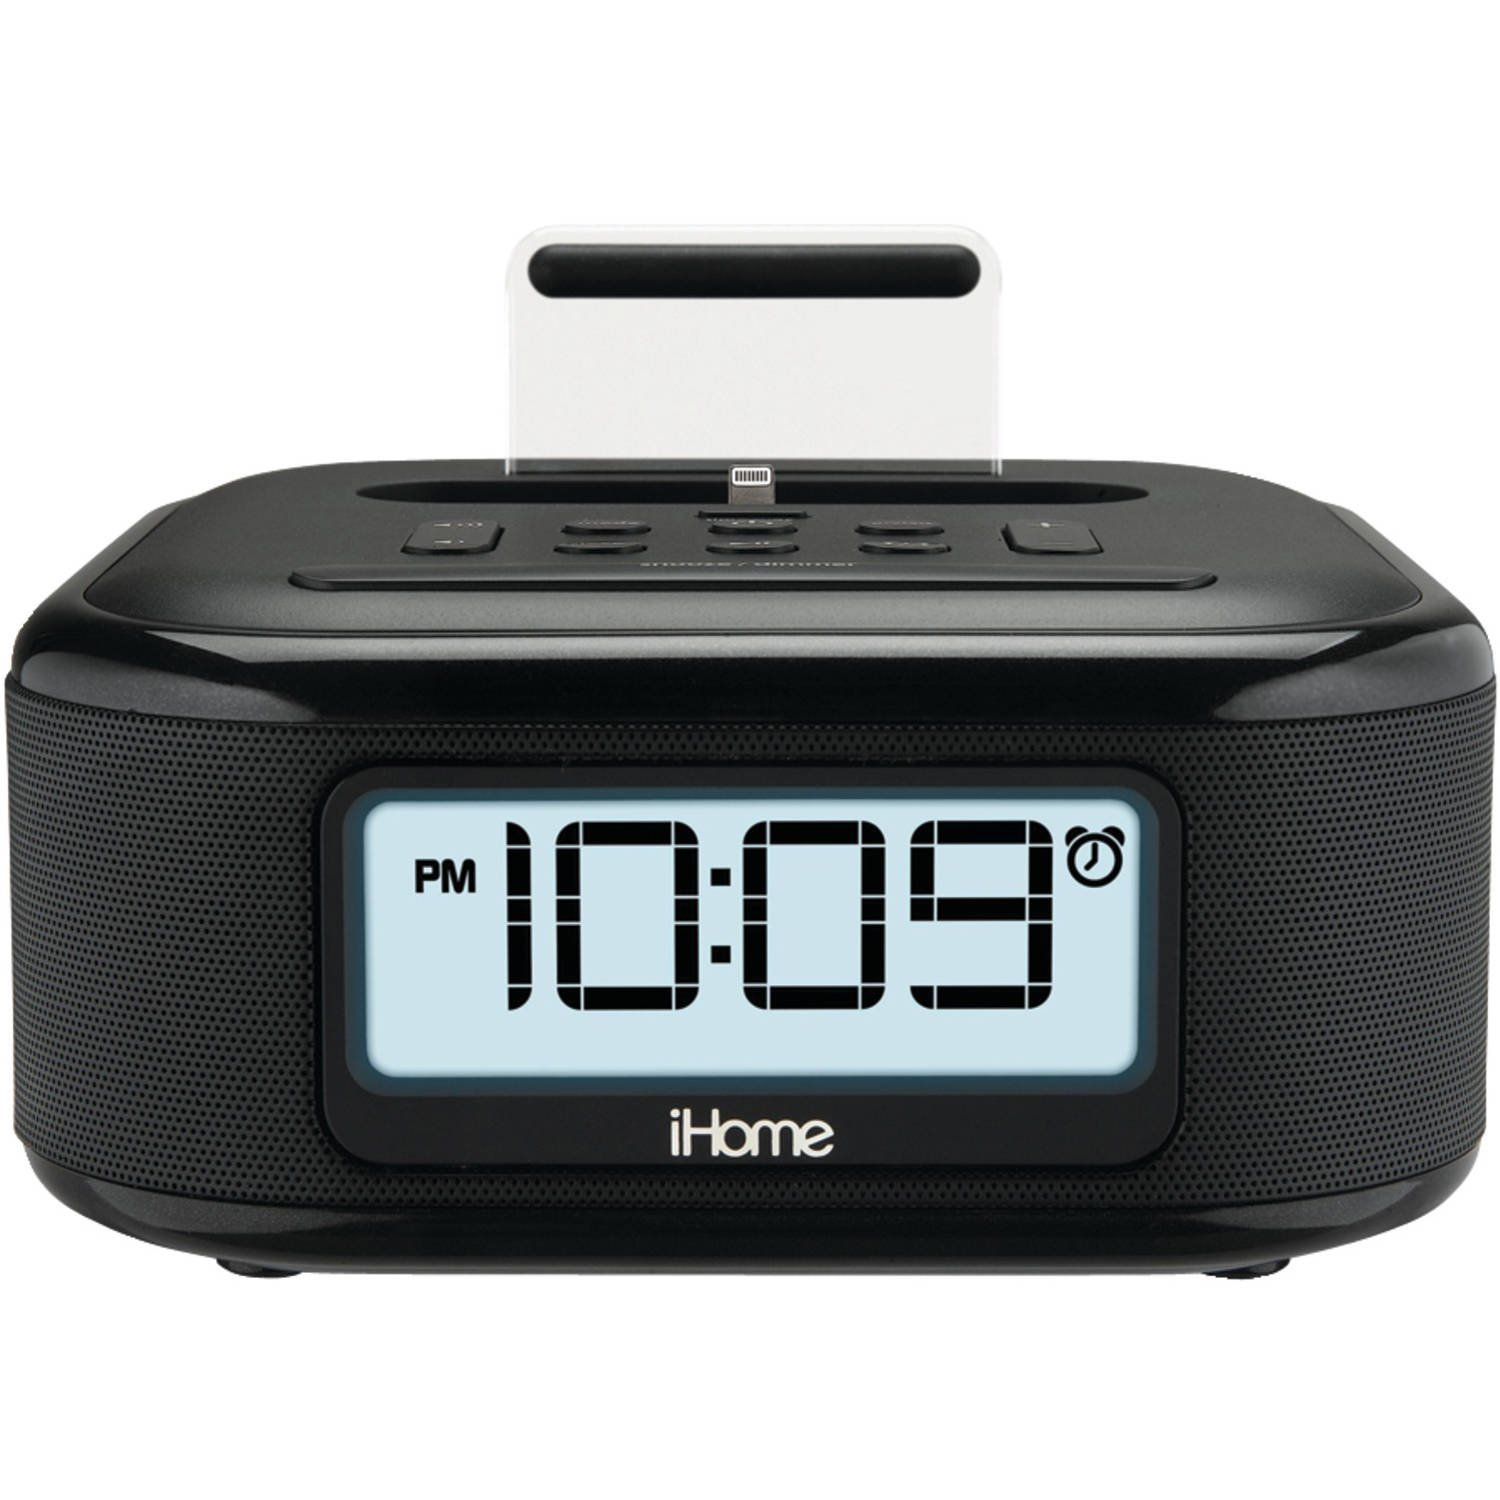 Details about iHome Stereo FM Clock Radio w/ Lightning Dock Charge/Play &  Aux Input for iPhone